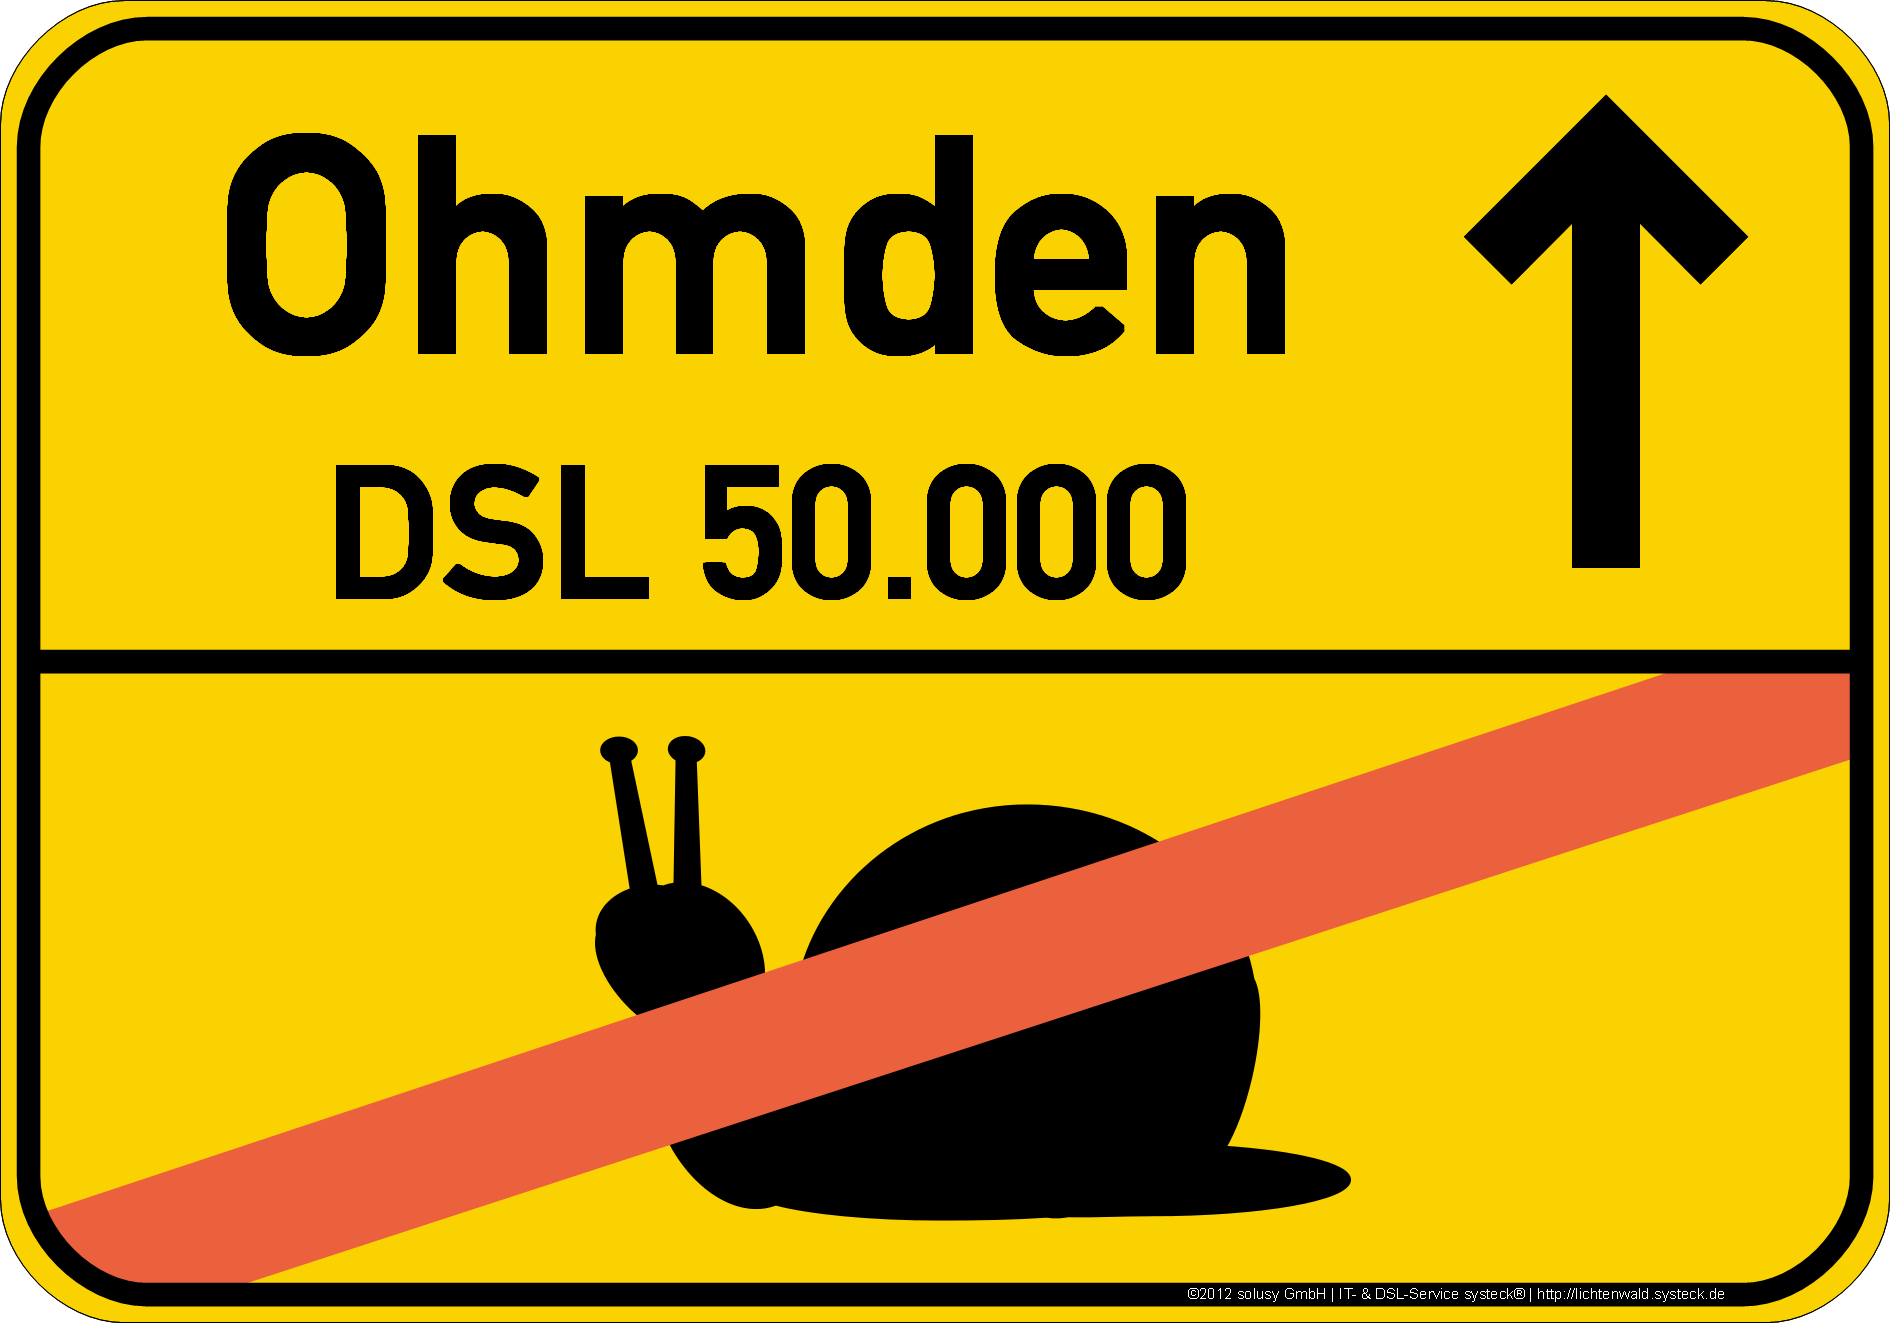 Schnelles Internet in Ohmden